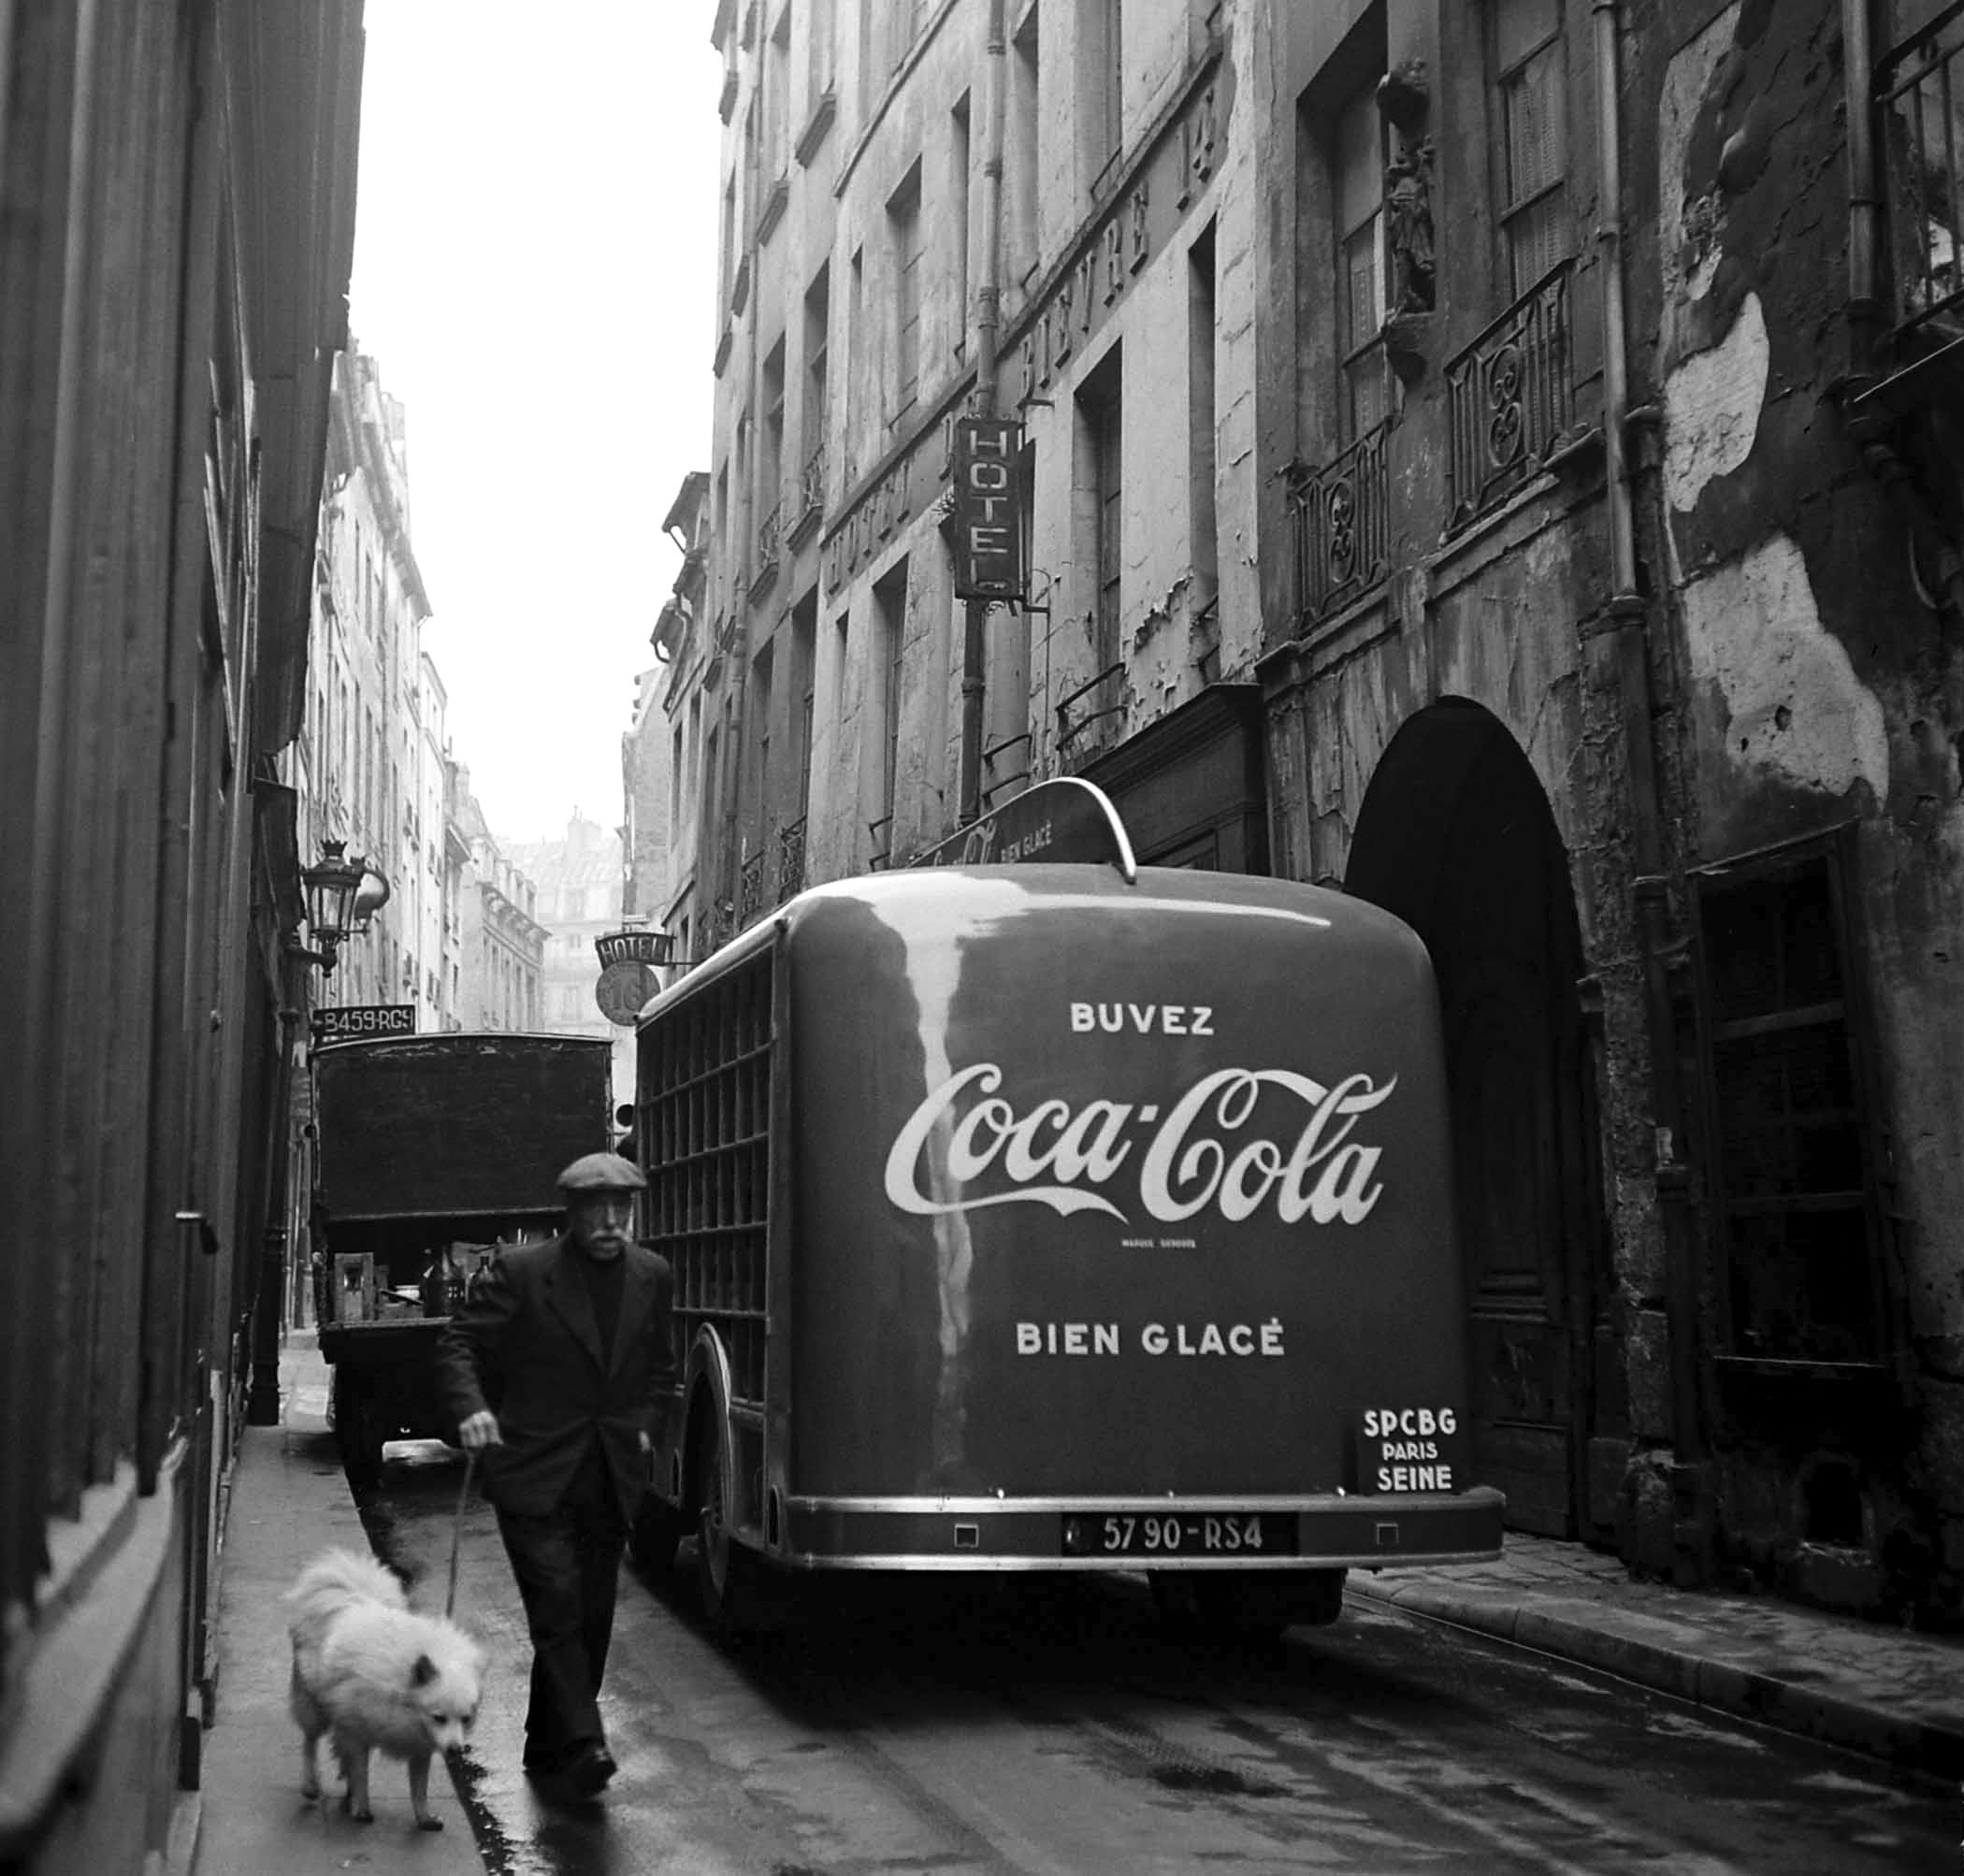 A Coke truck makes its rounds in 1950 France.